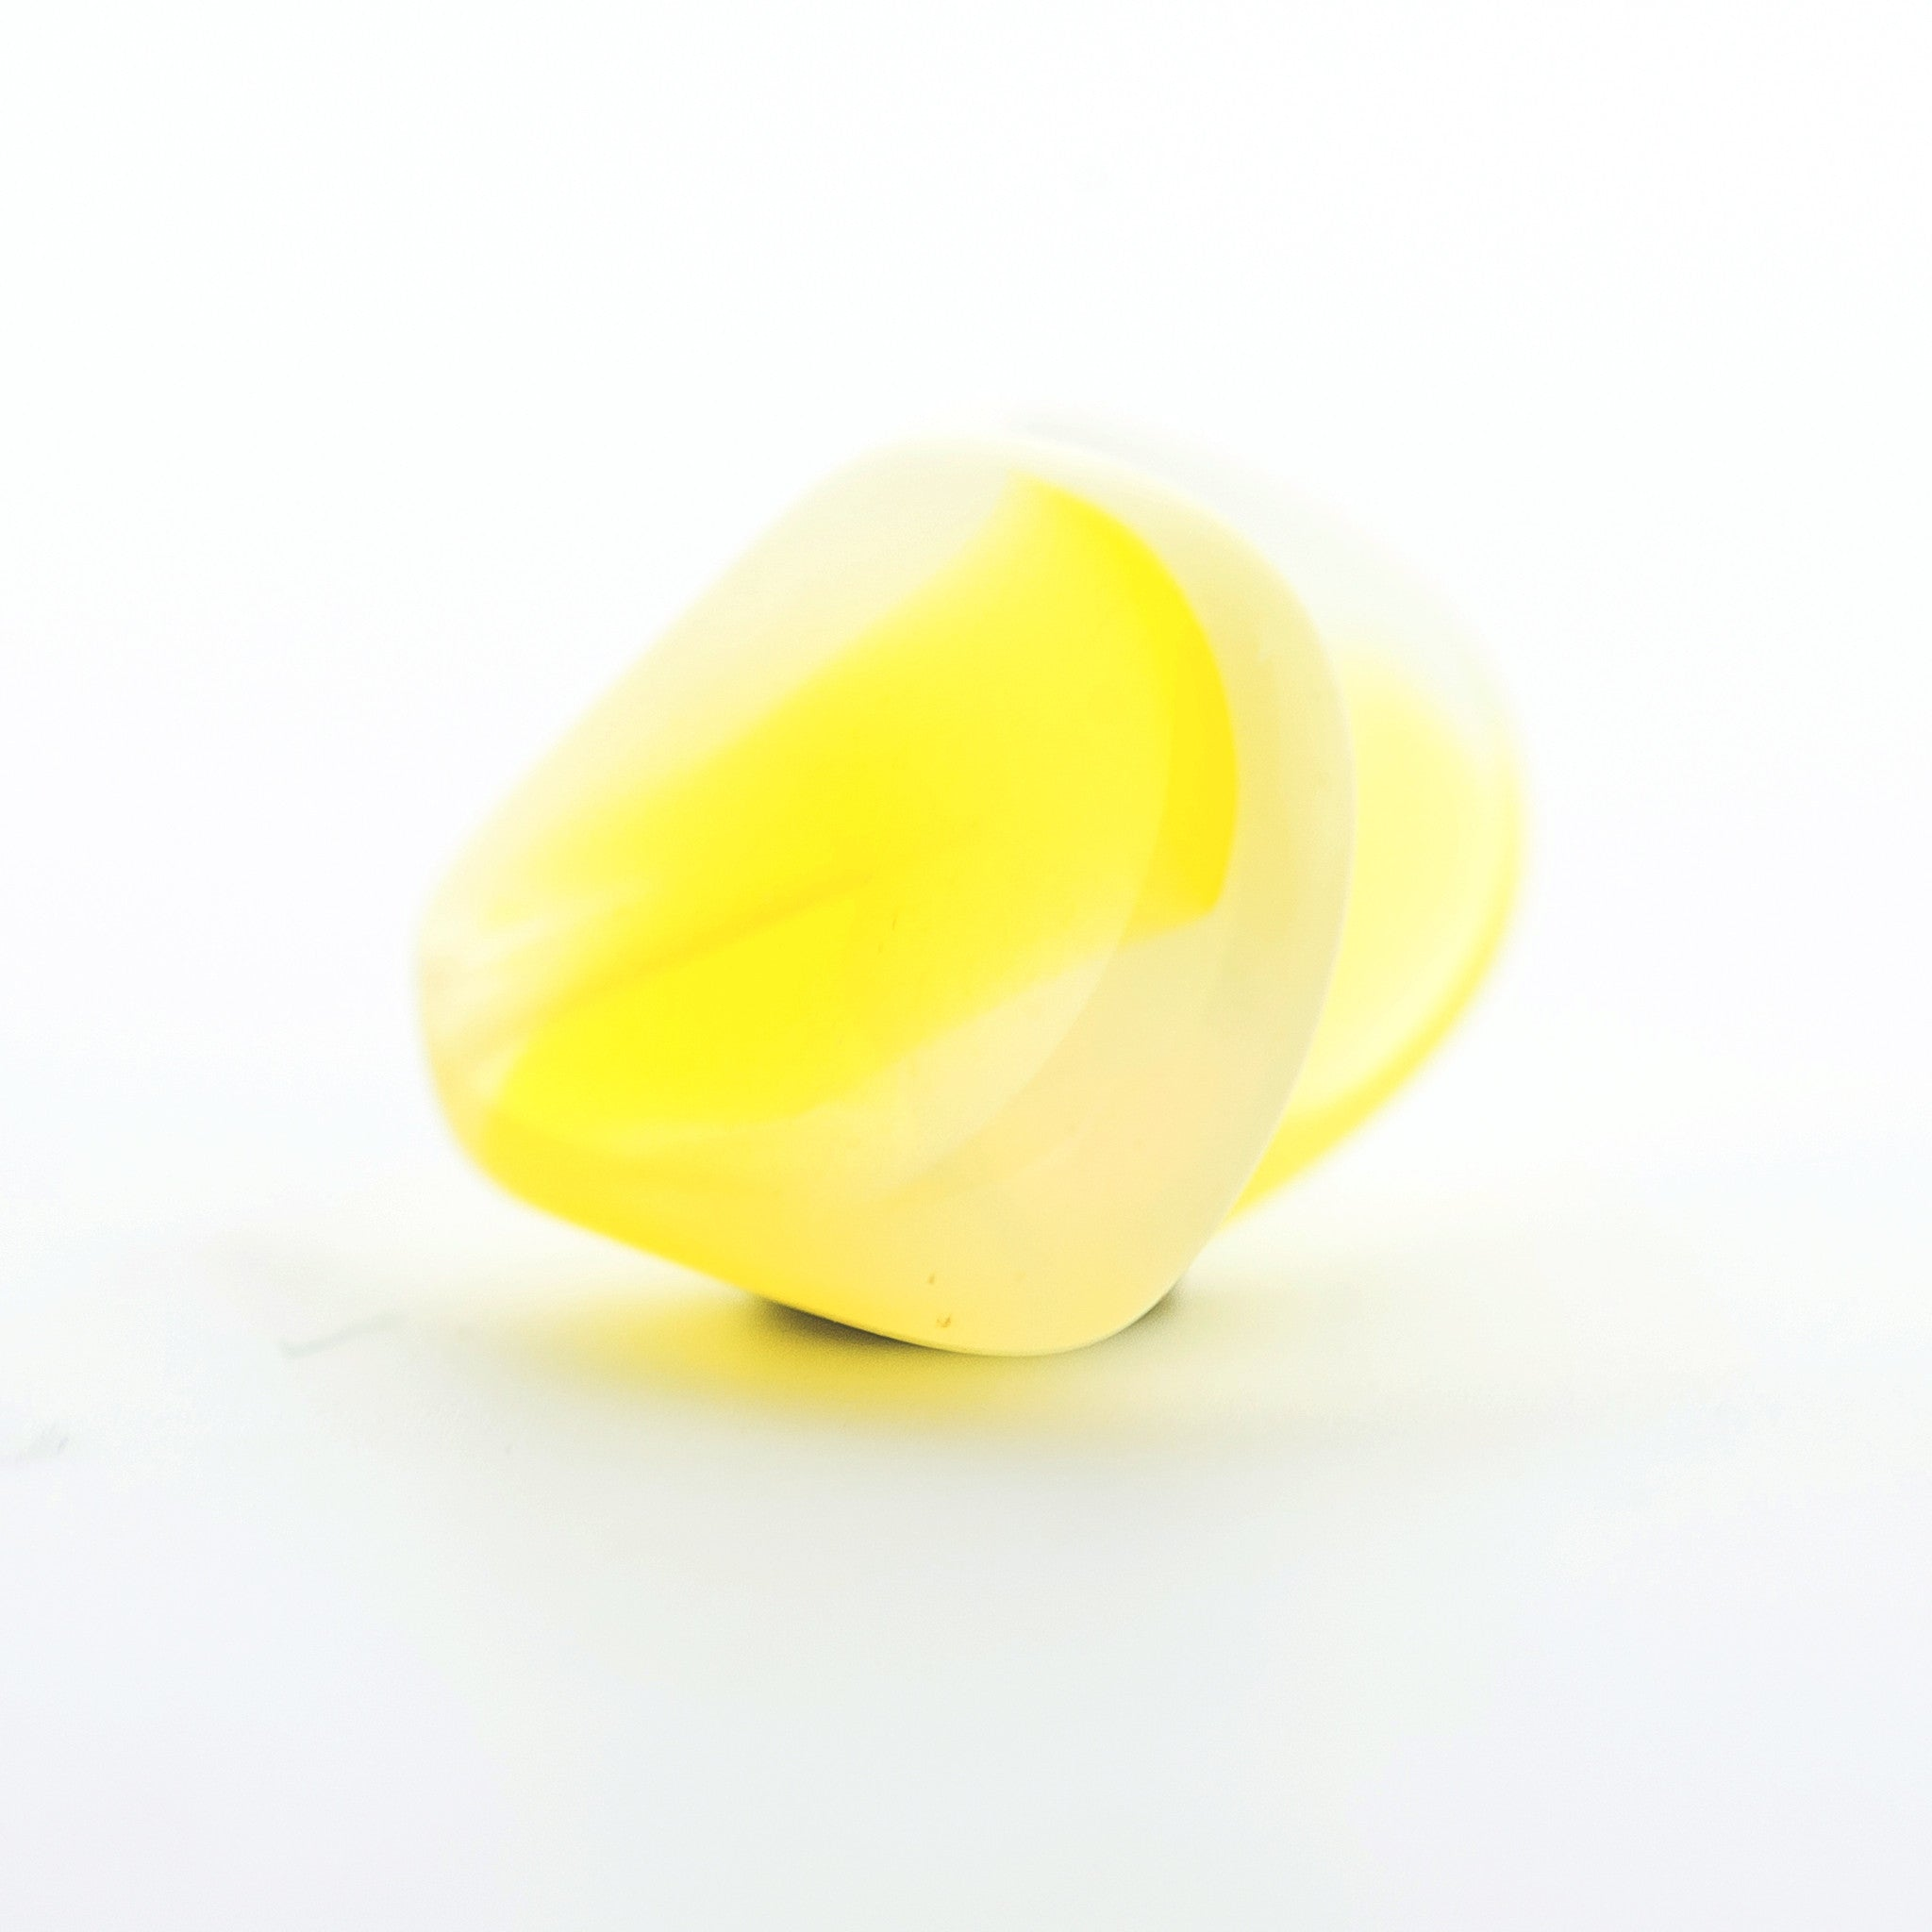 19MM Yellow/Wht.Opal Interlock Bead (24 pieces)